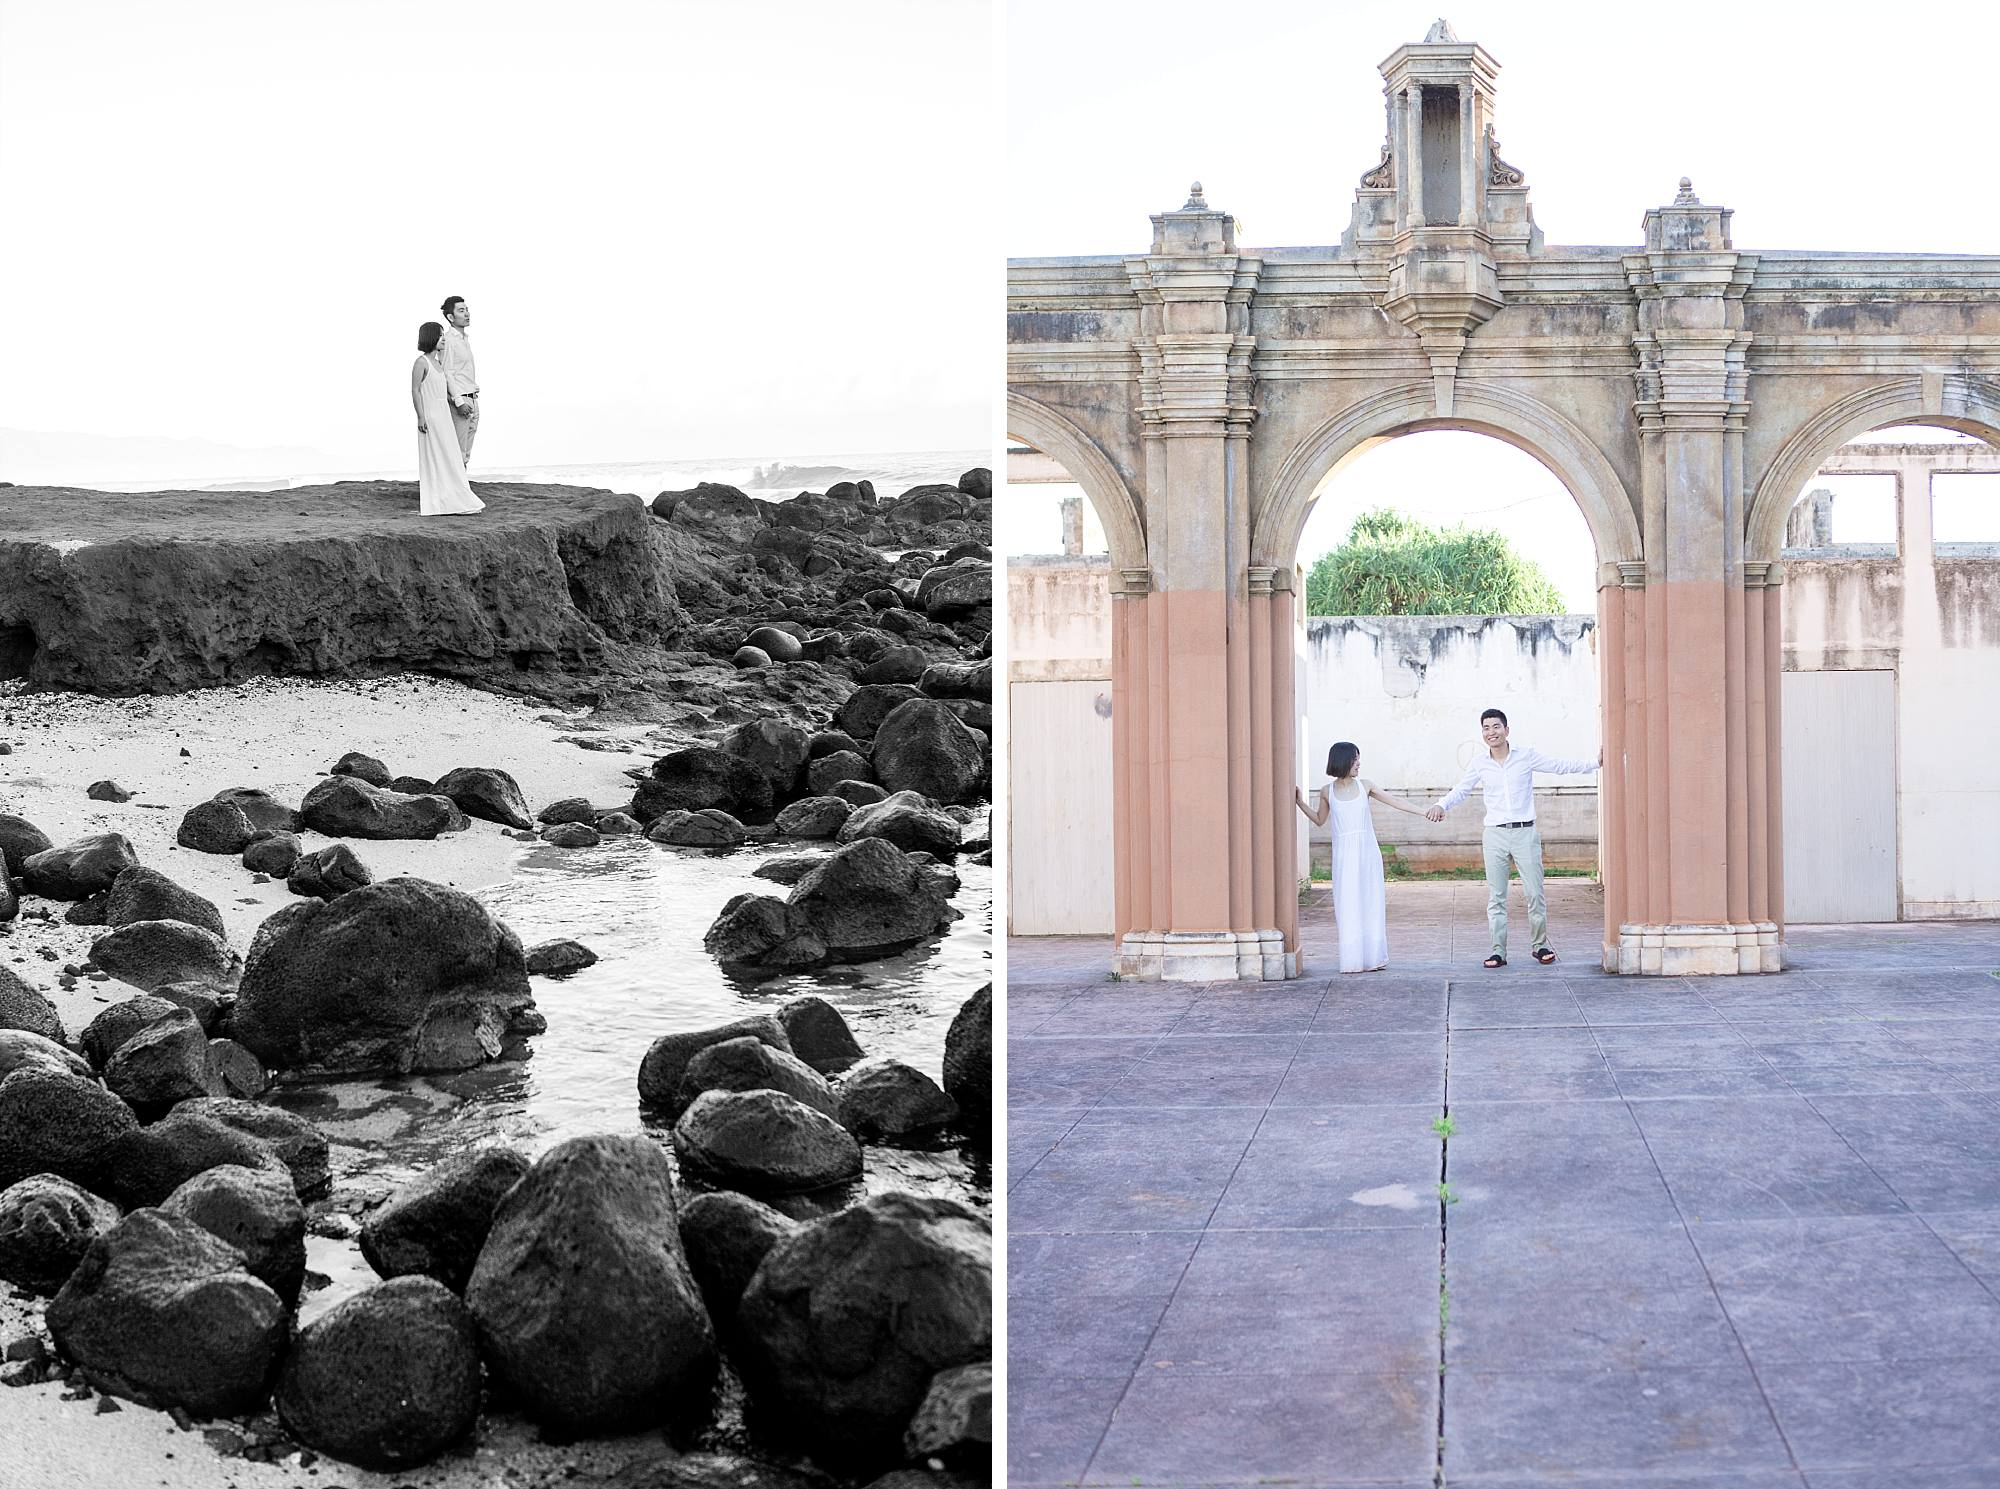 couple on lava rocks and under an archway